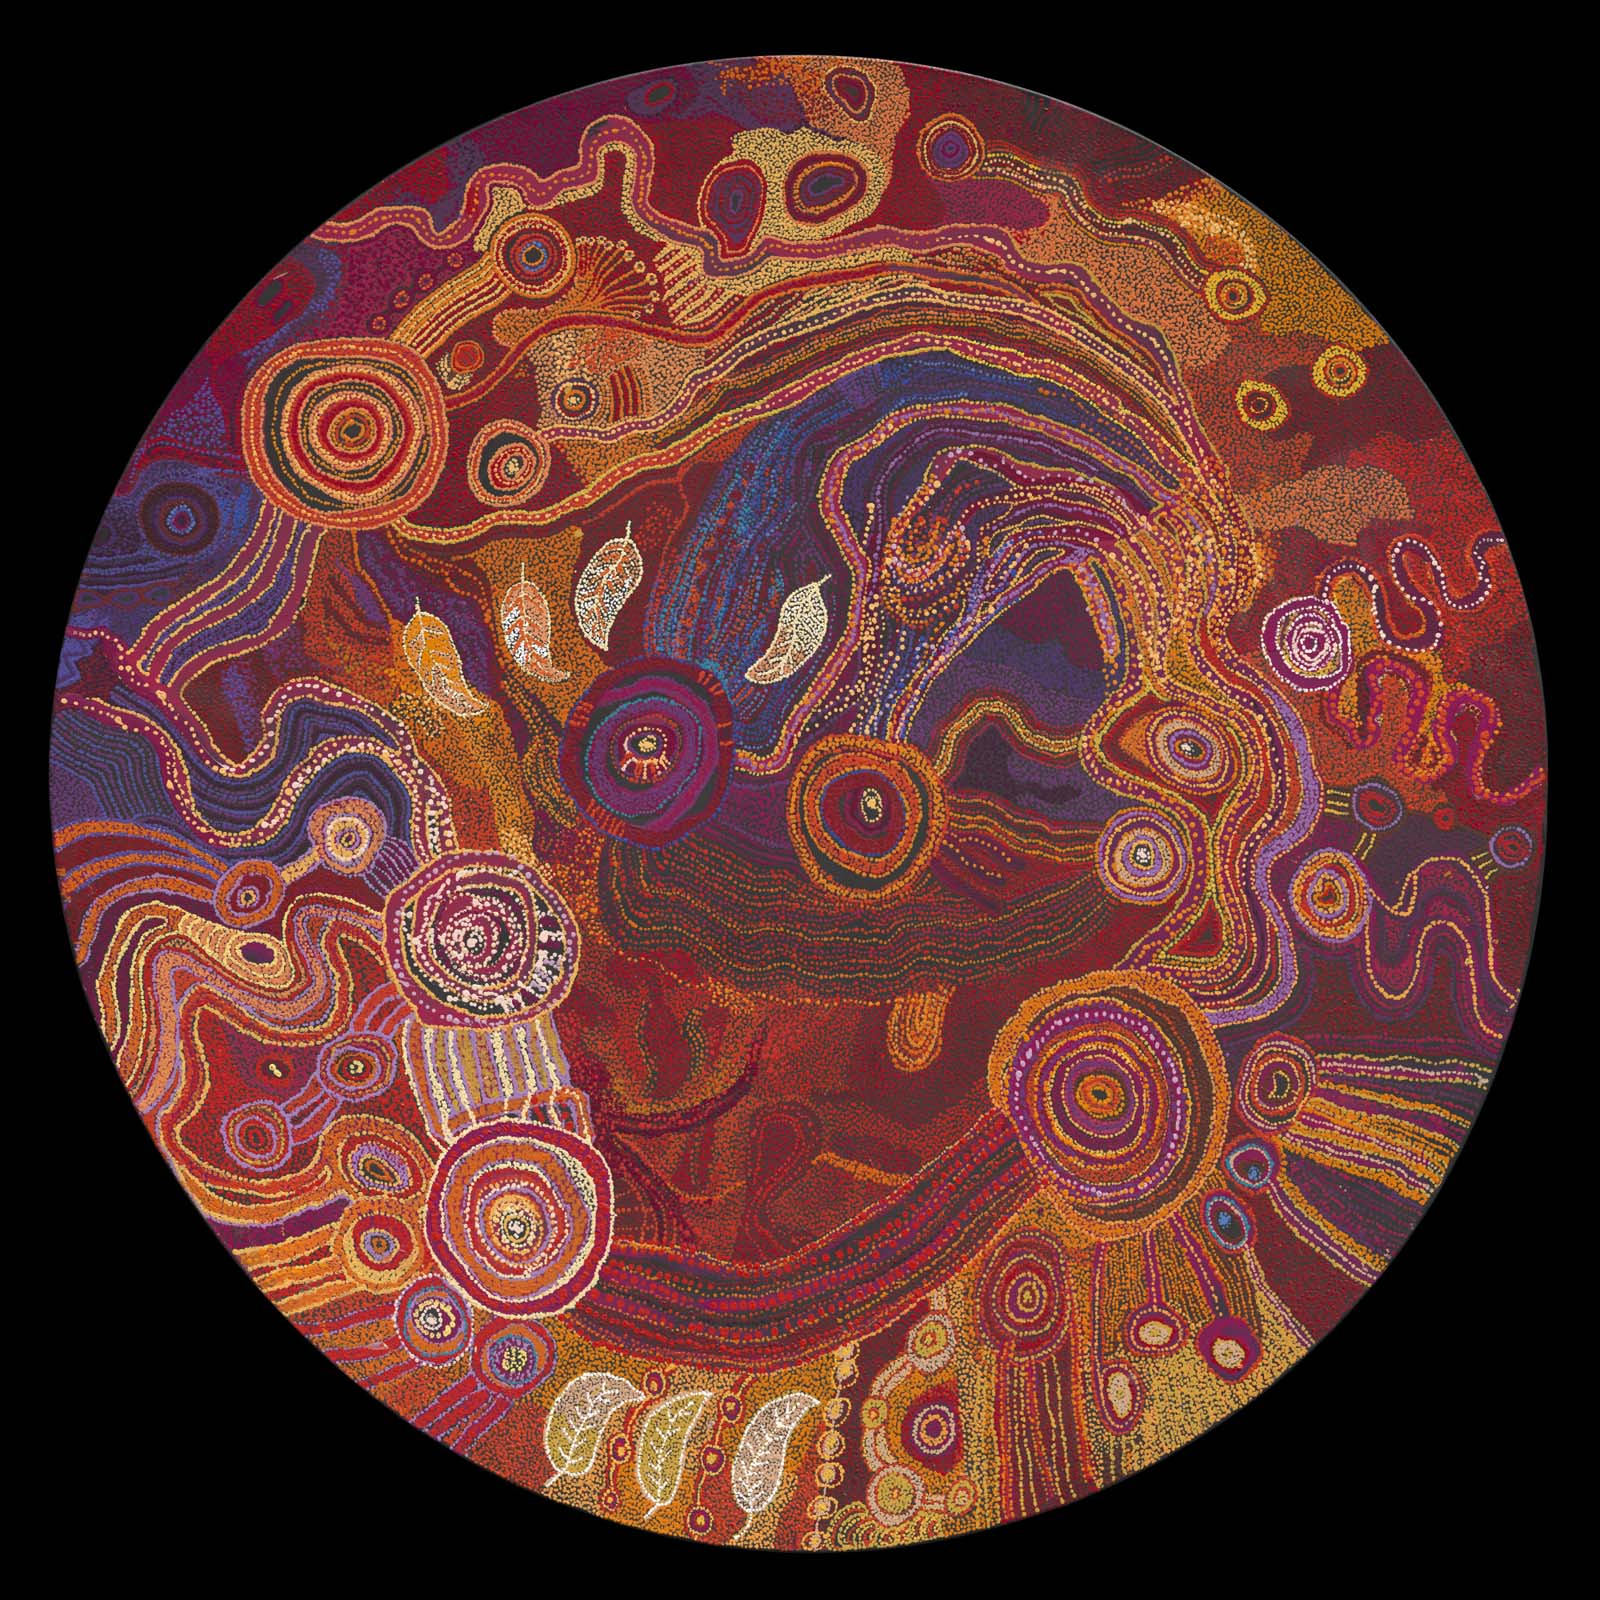 circular abastract painitng of oranges and reds in swirling repeating patterns, circles and lines